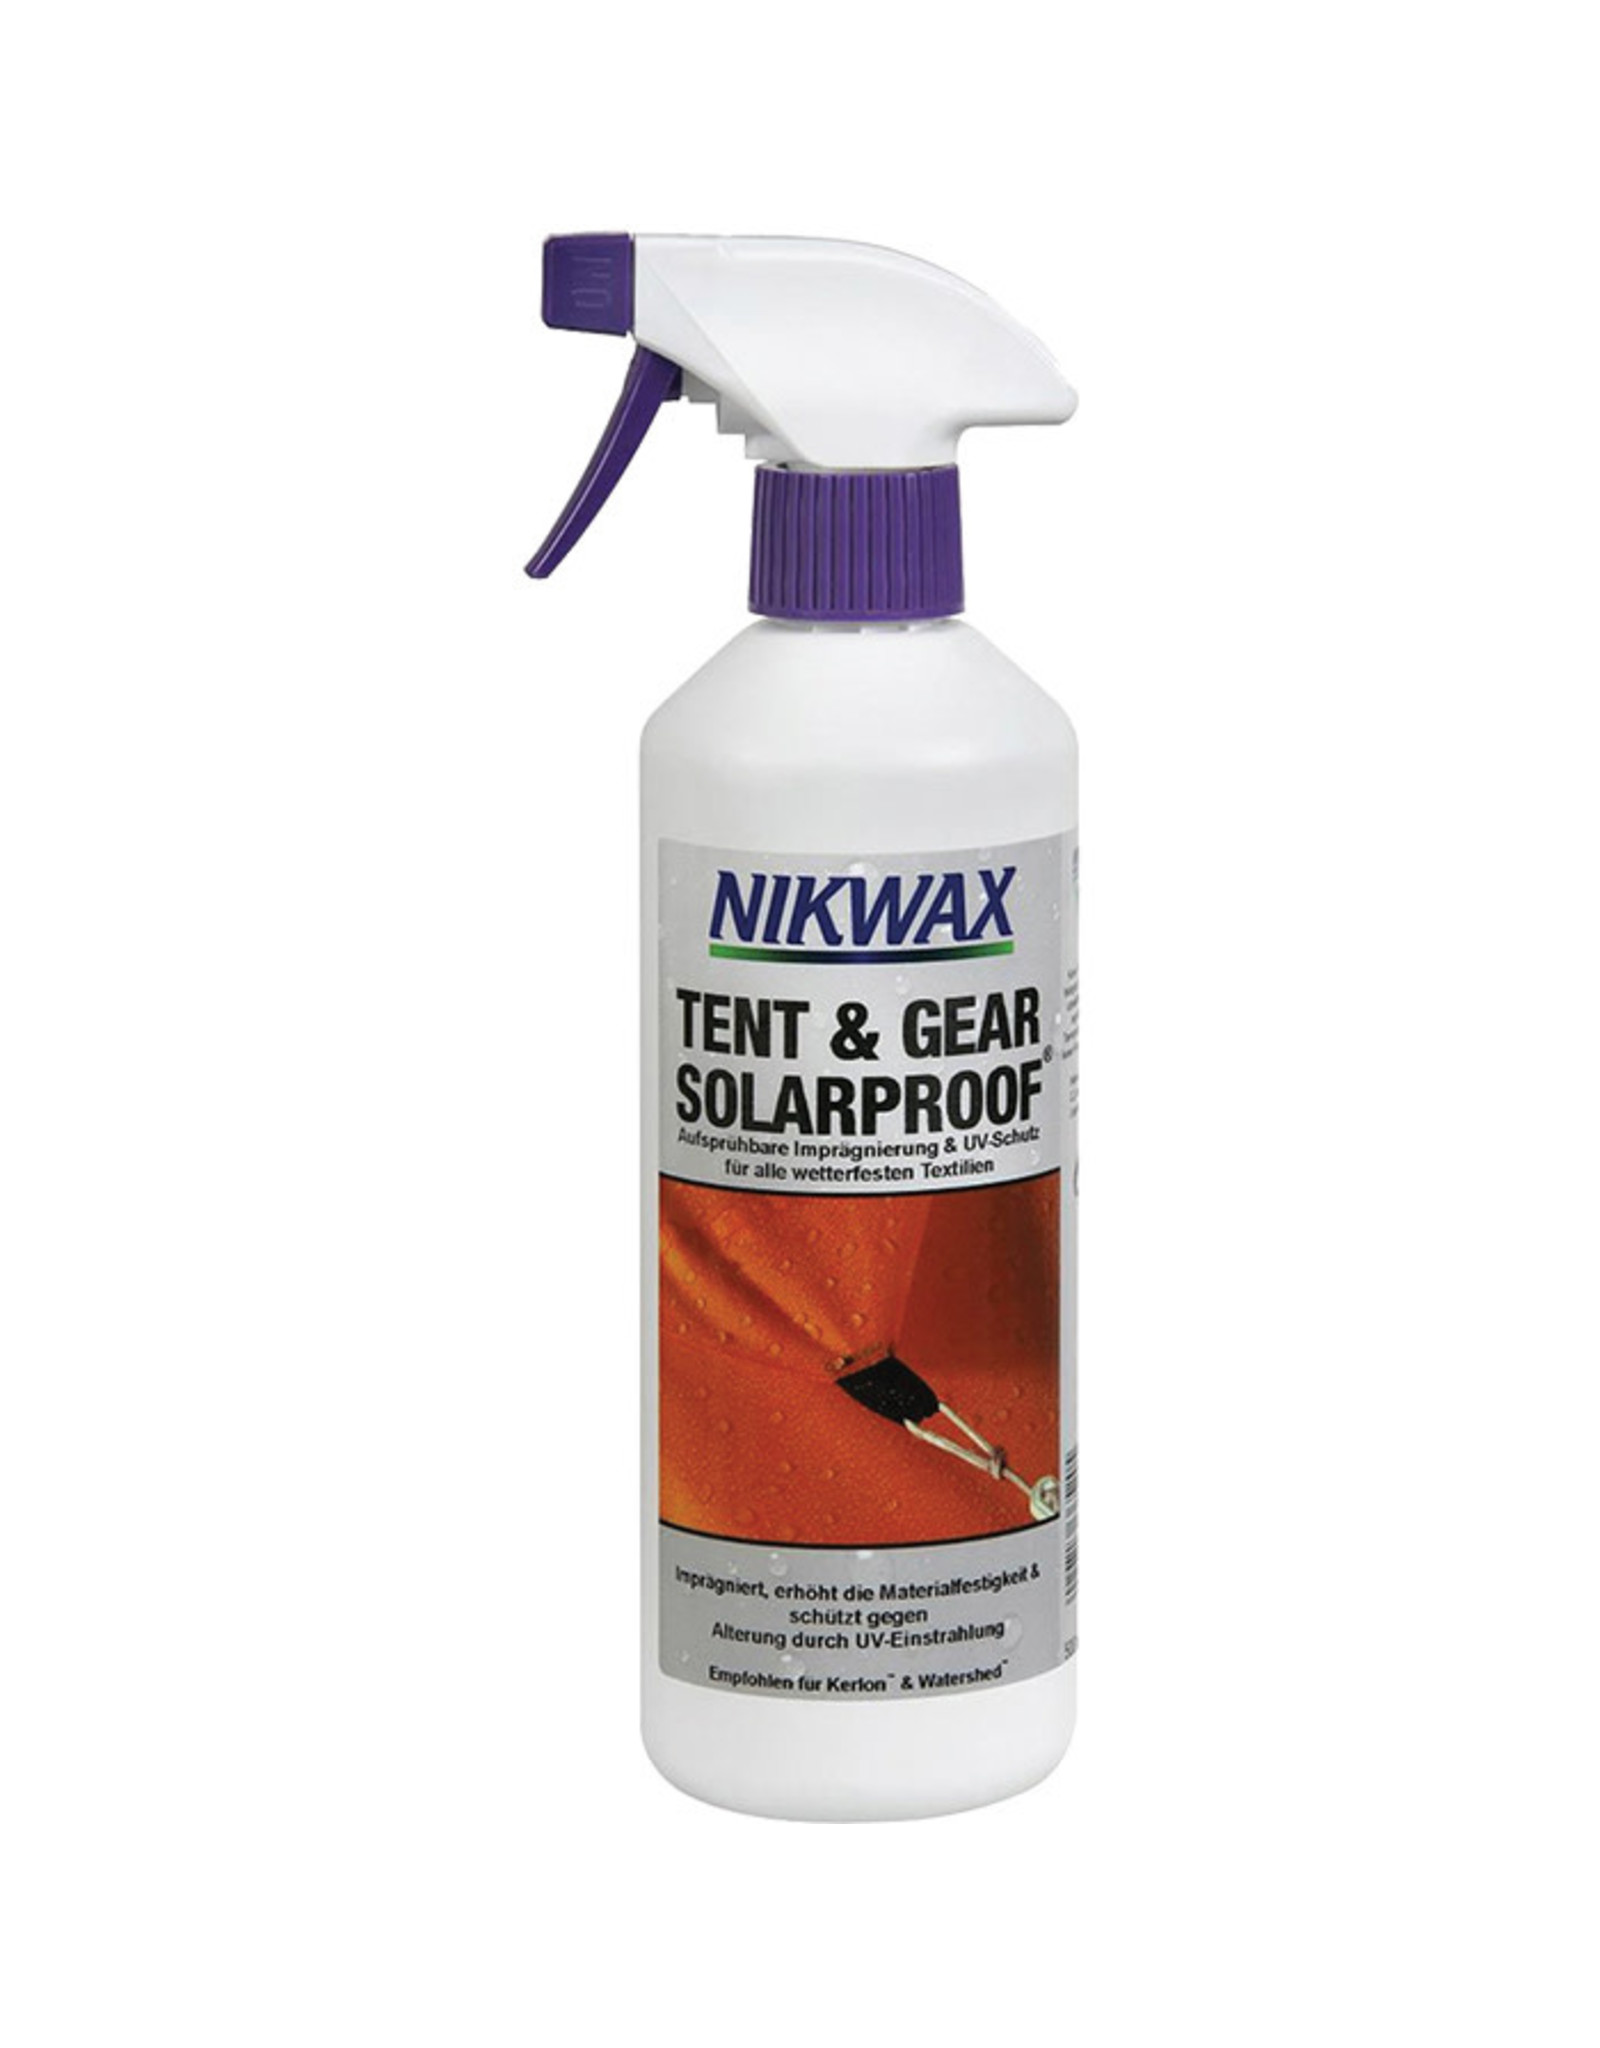 NIKWAX TENT AND GEAR SOLARPROOF 17 oz.